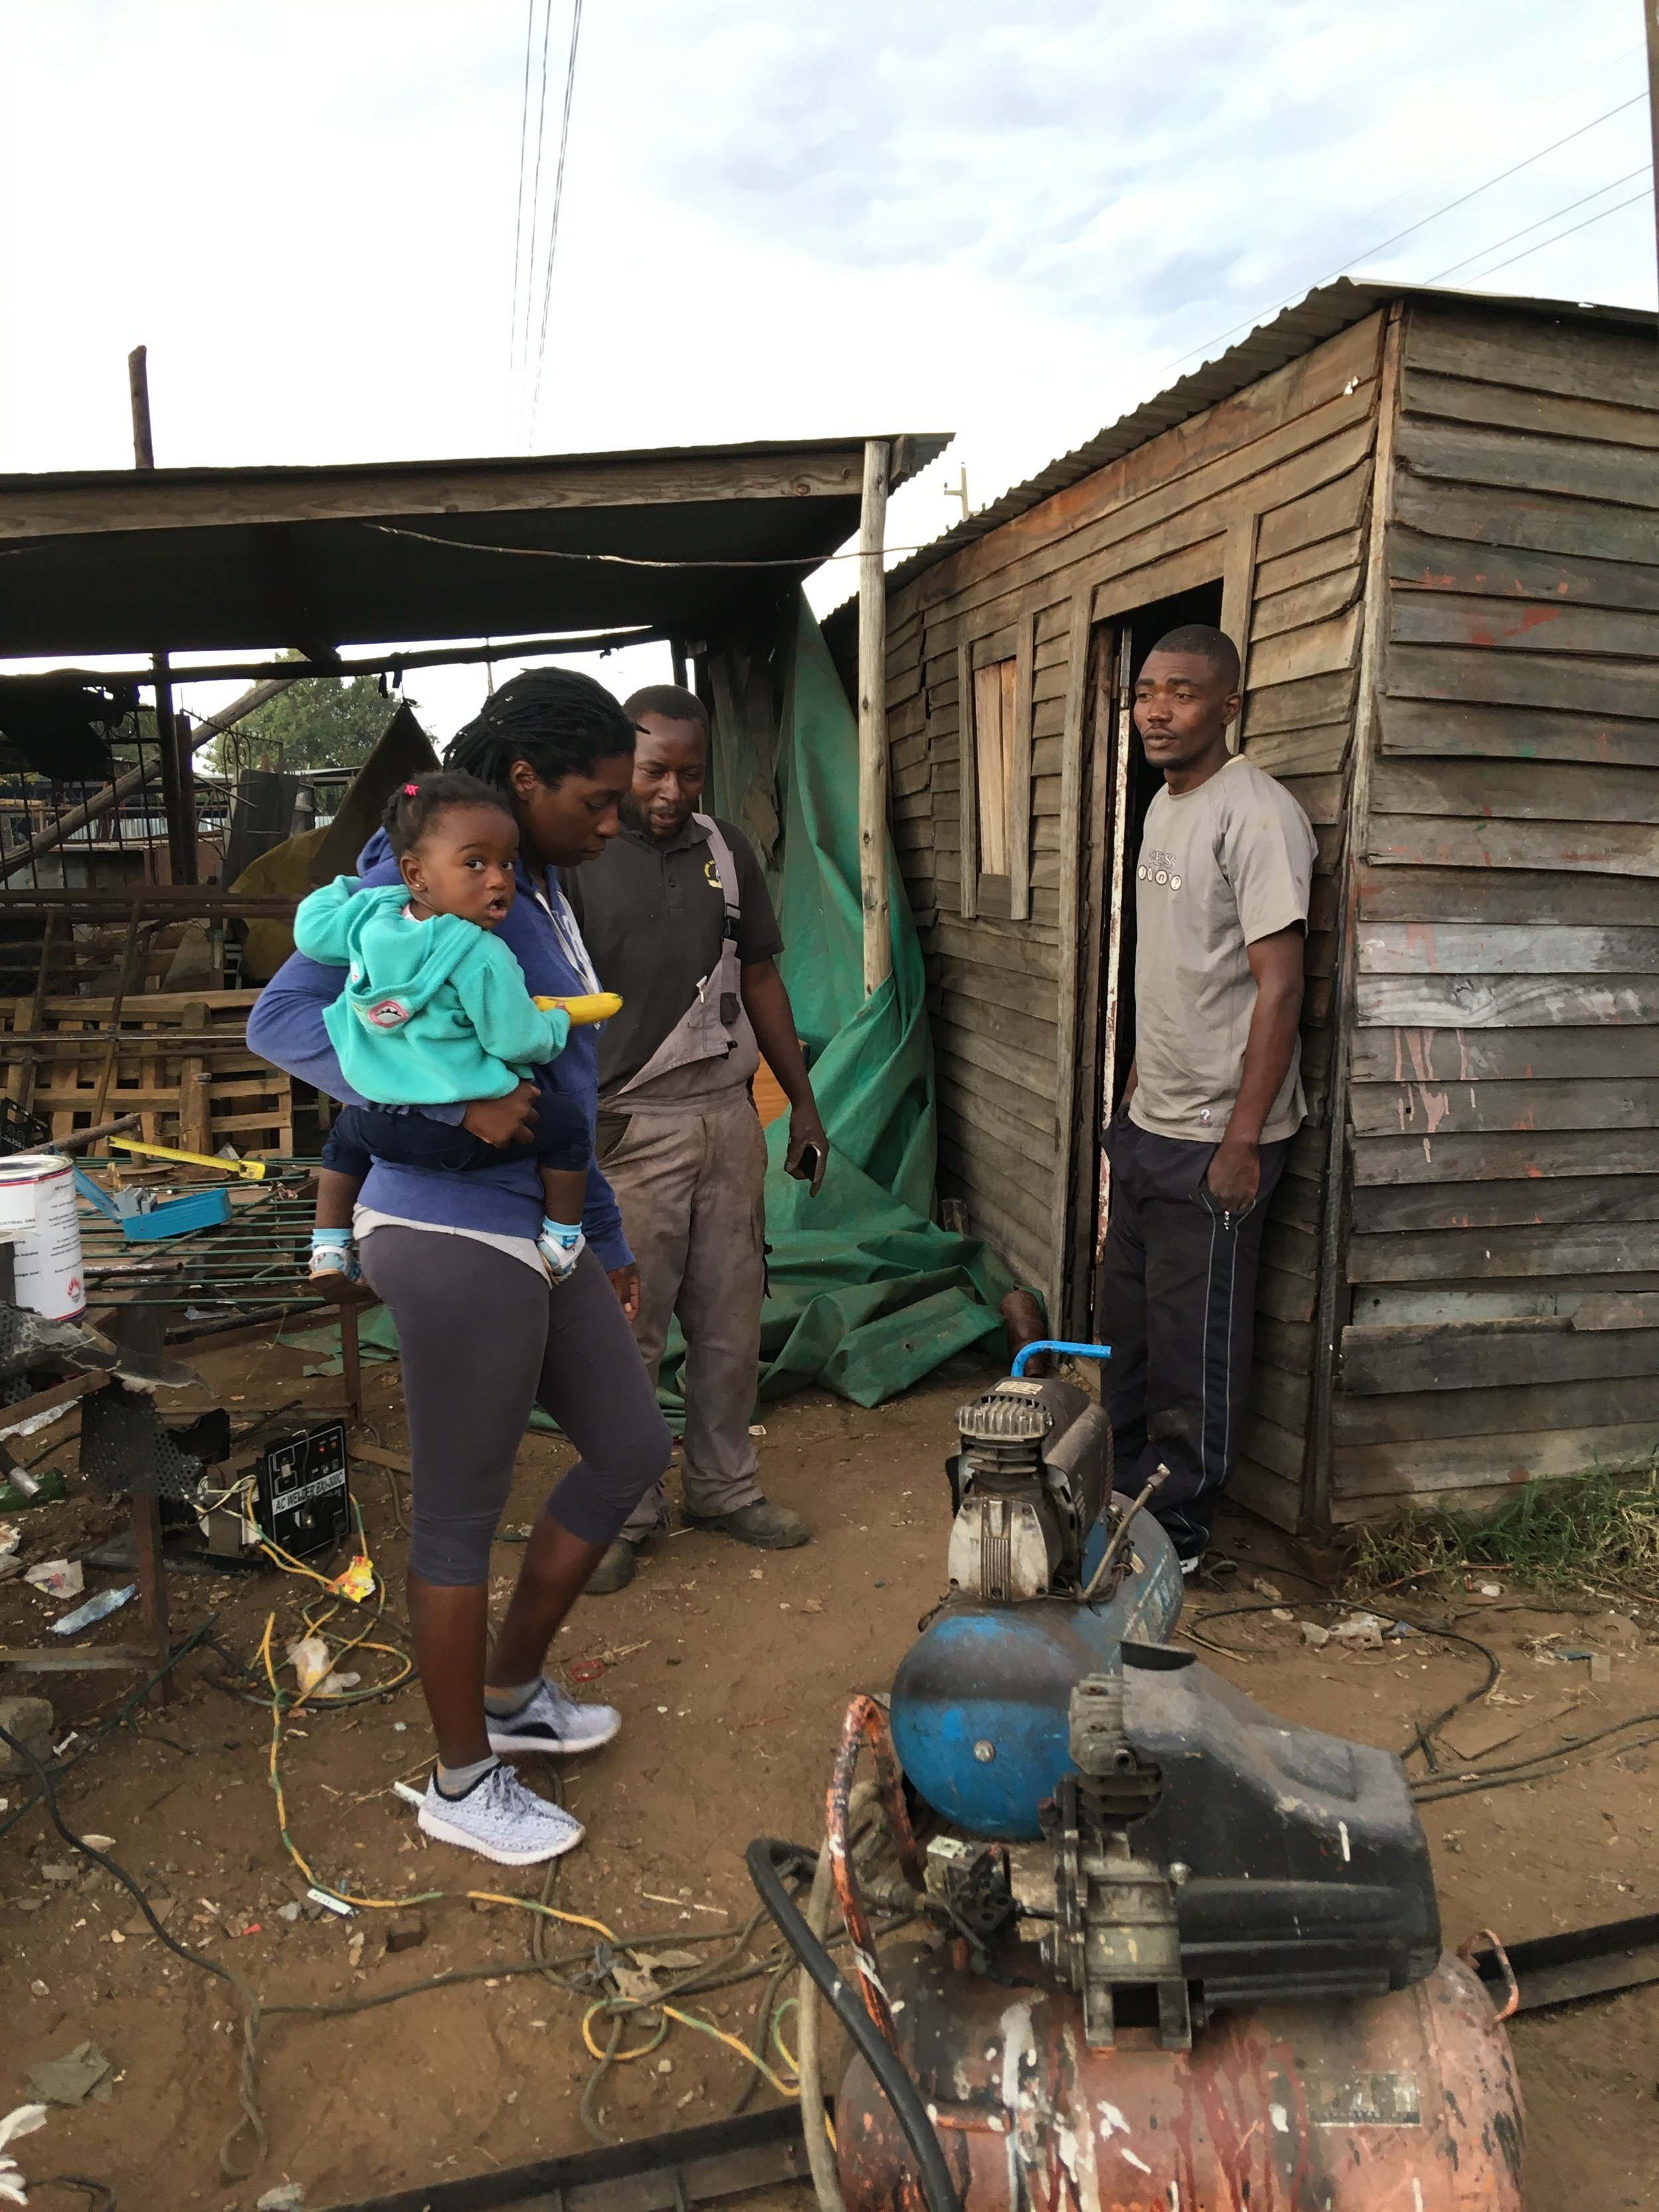 Maforo's Workshop - Maforo lives in Glen Norah, and works out of a small shack on the side of the road.